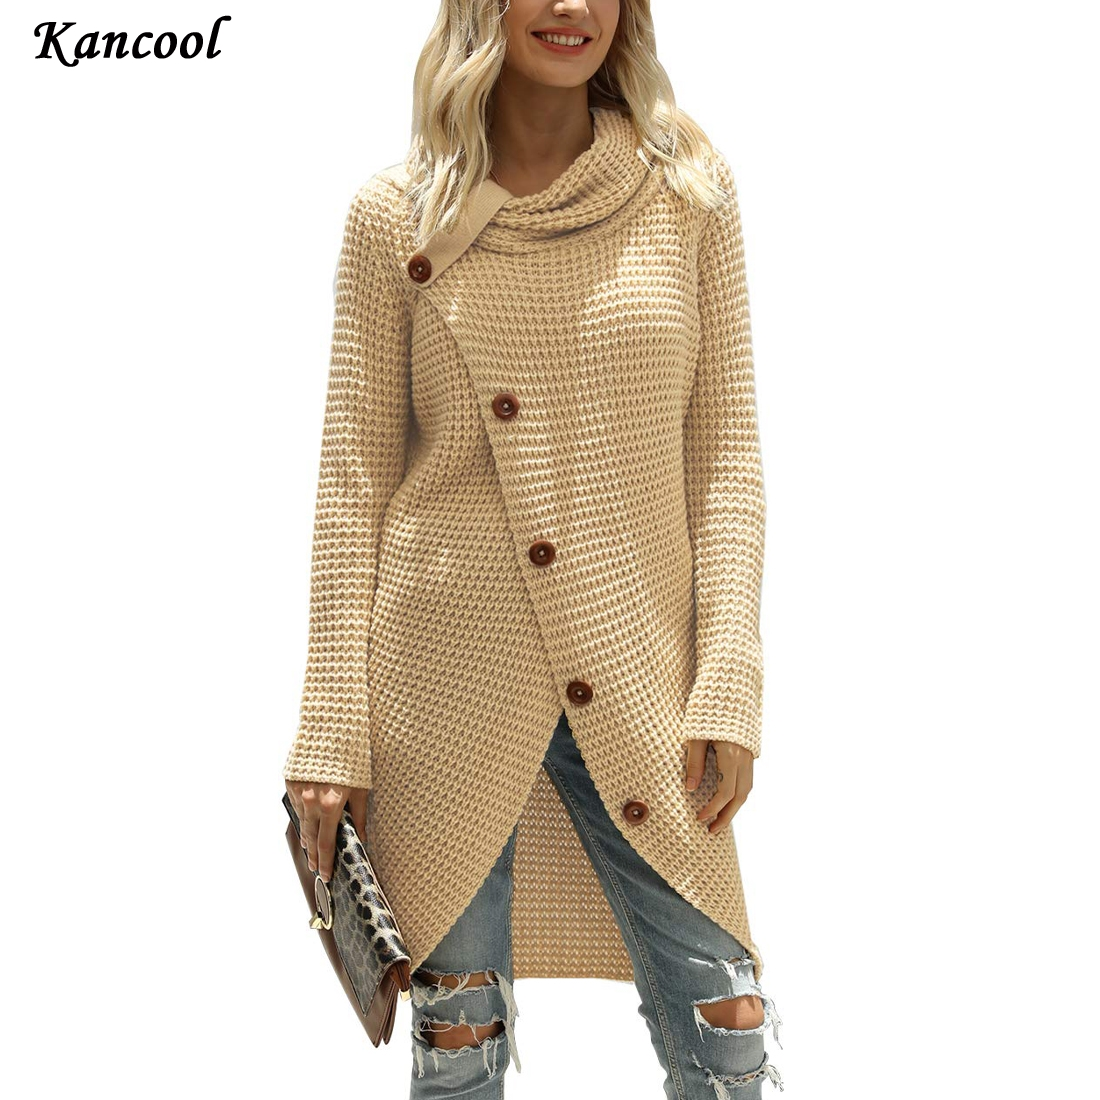 KANCOOL Hot Women Fashion Knitted Pullover Sweater Long Sleeve Turtleneck Solid  Pullovers Blouse Shirt Jumper Winter Clothing|Pullovers|   - AliExpress